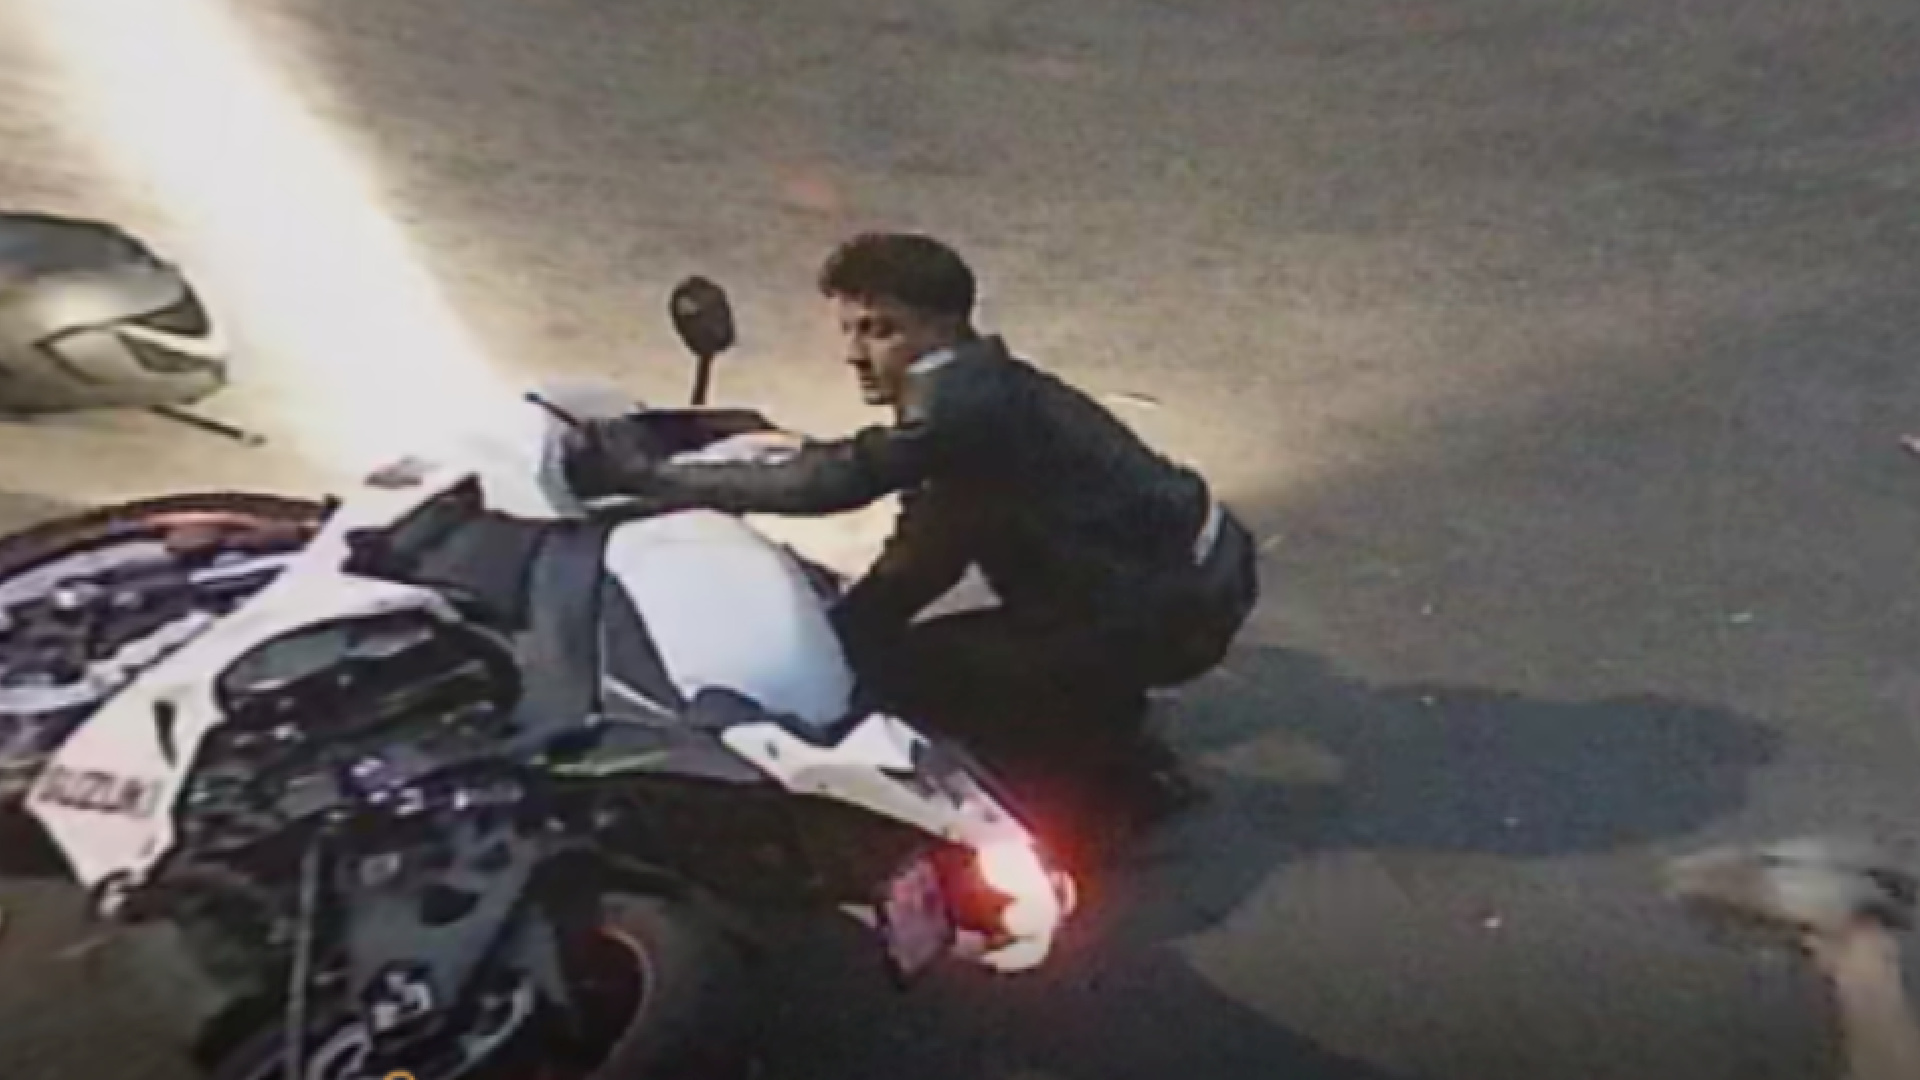 A motorcyclist sought in a hit-and-run crash that injured 6-year-old riding scooter in Sylmar on Oct. 24, 2020. (LAPD Valley Traffic Division)